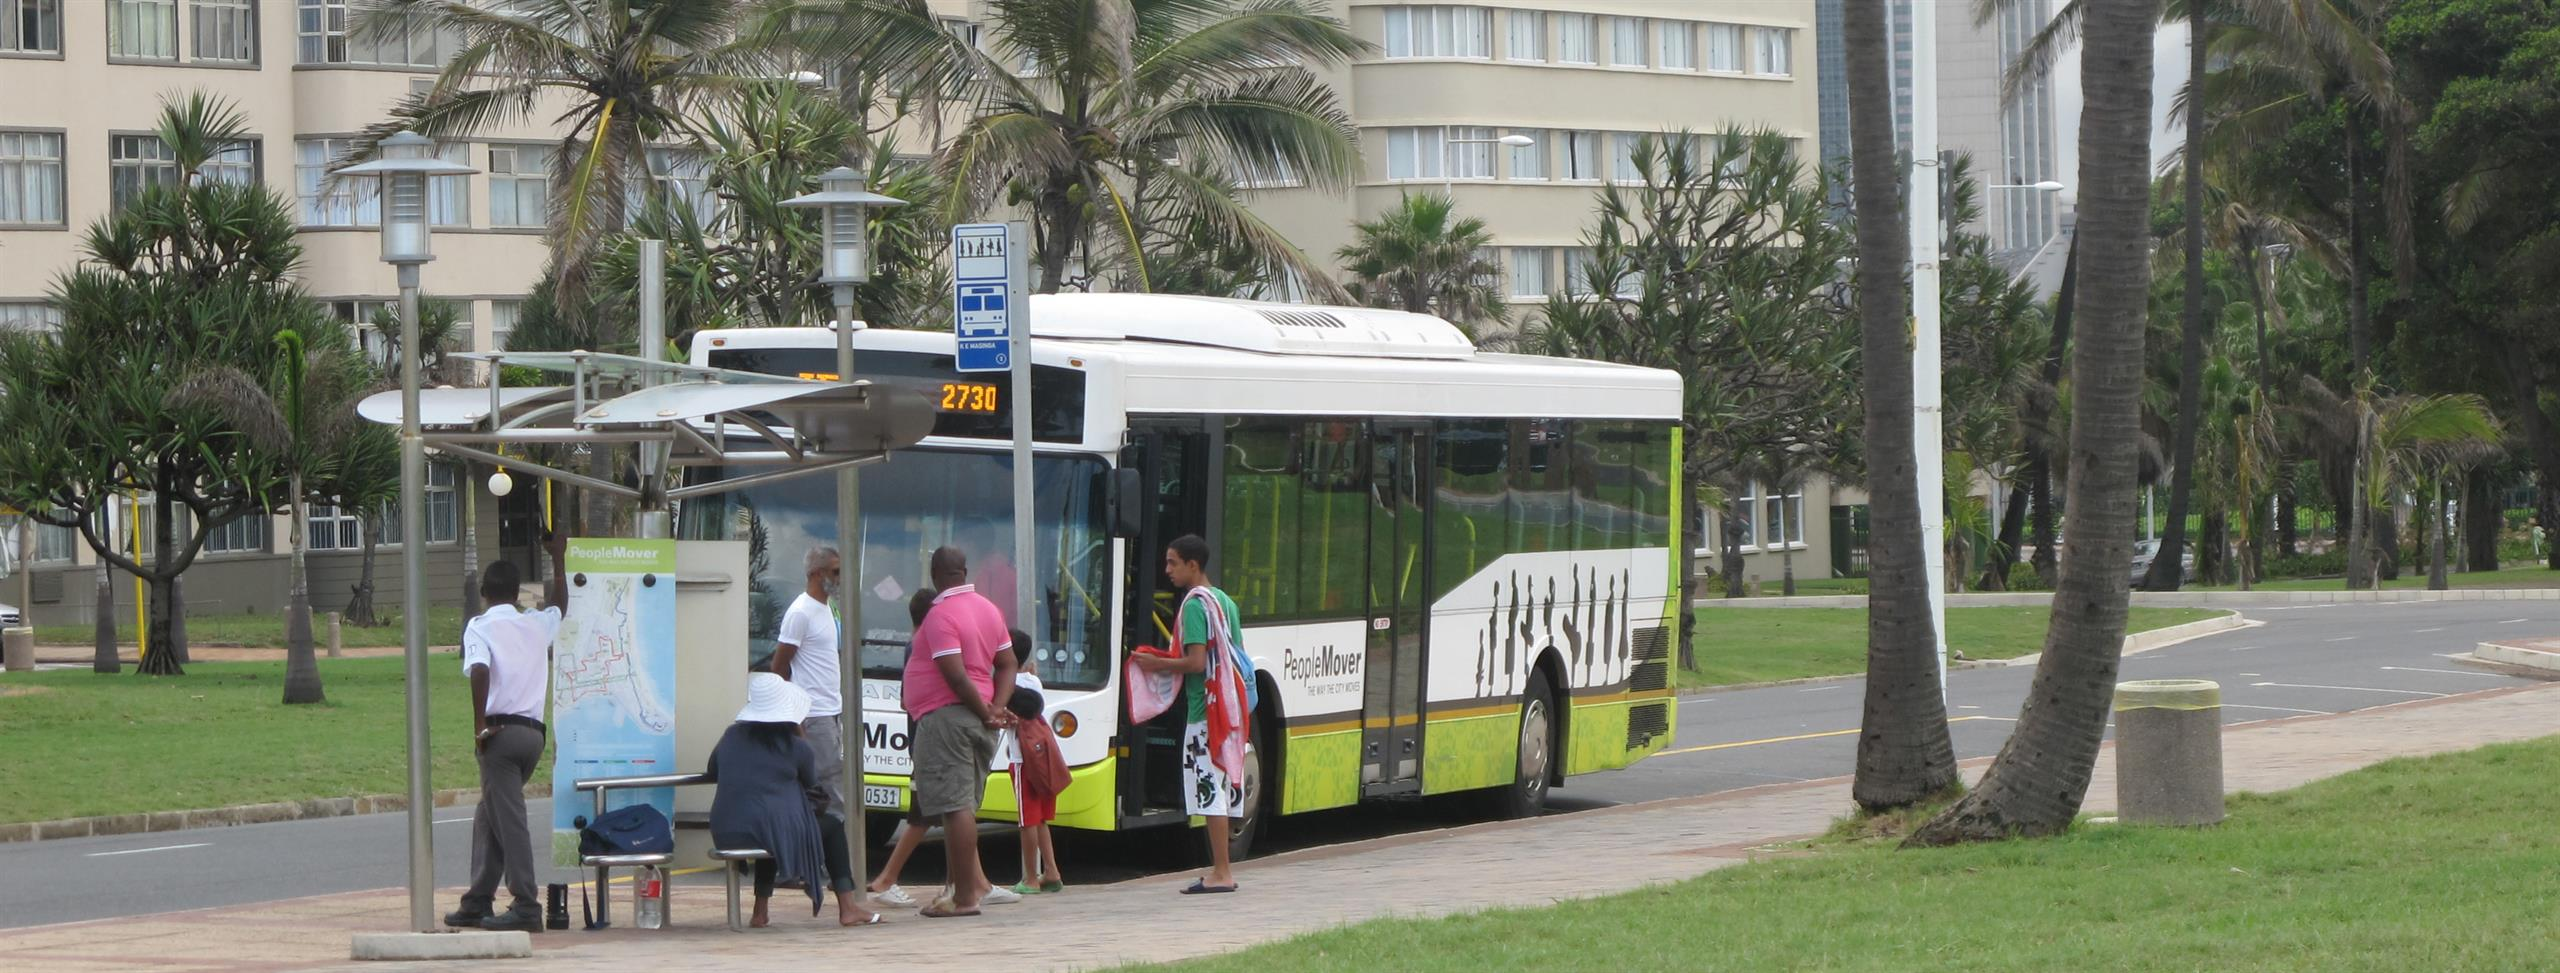 South Africa's National Department of Transport has developed an integrated rapid public transport network (IRPTN) to provide a safe, affordable and seamless transport experience for the eThekwini community of KwaZulu-Natal, South Africa. Commuter rail, b